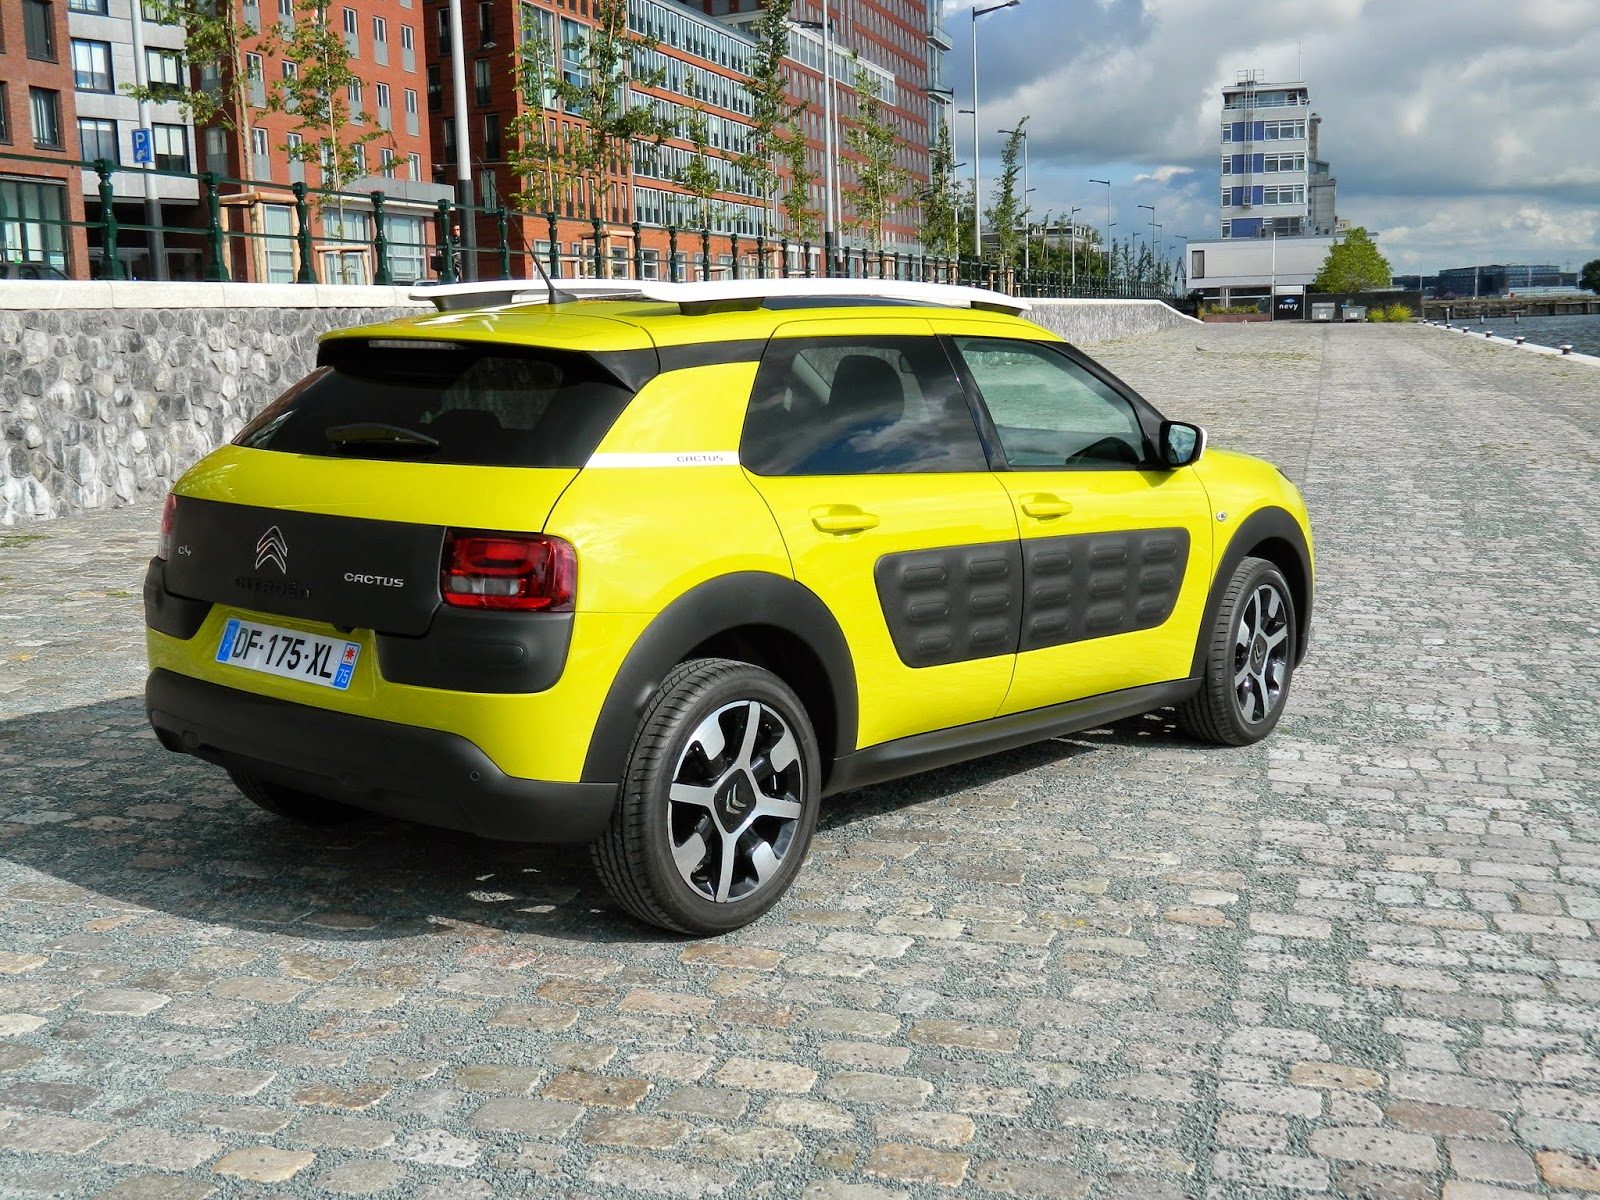 Citroen C4 Cactus in Yellow